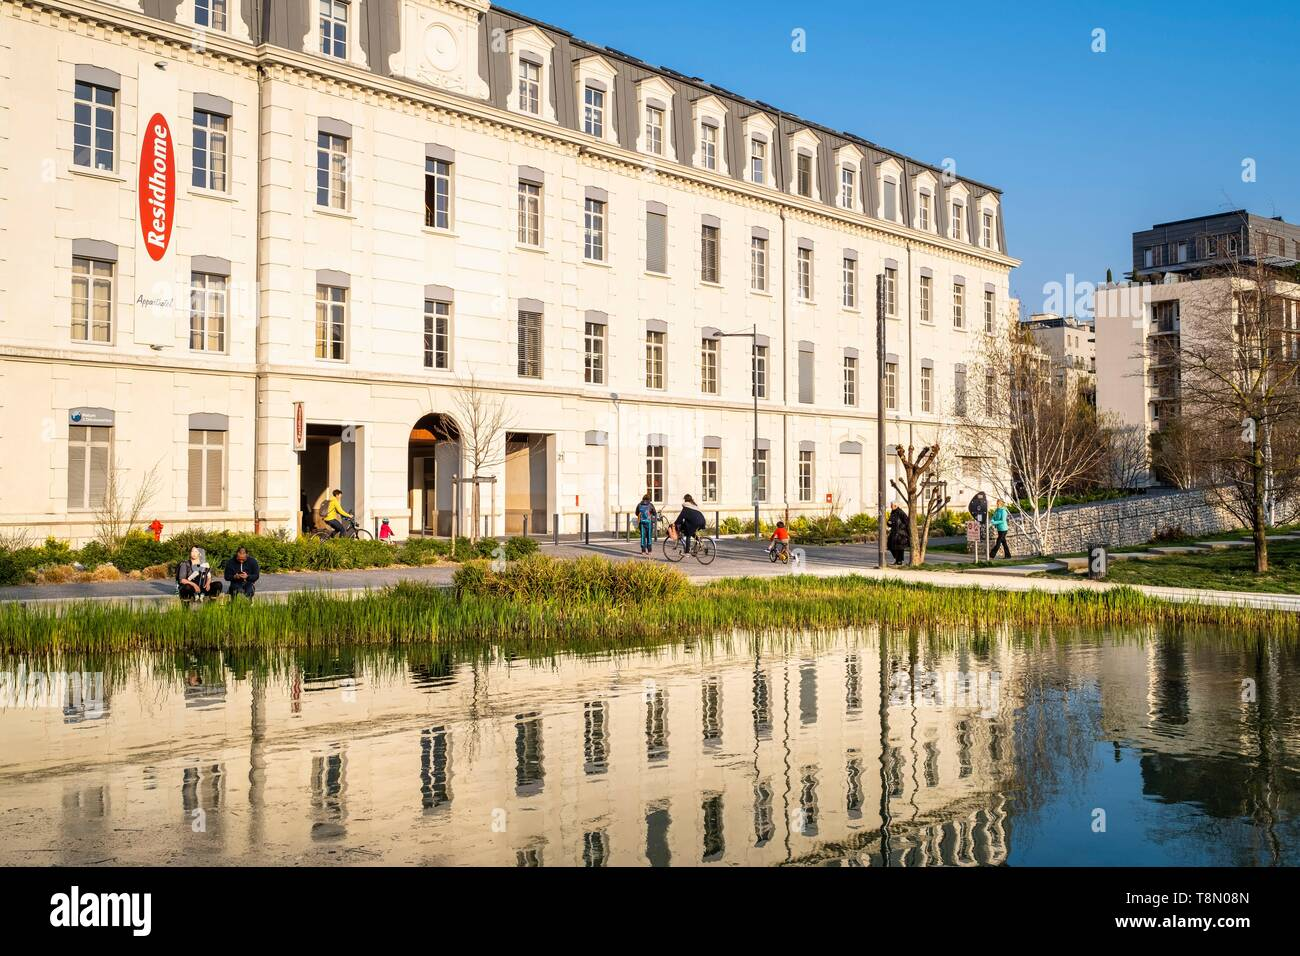 France, Isere, Grenoble, the Ecodistrict of Bonne, Grenoble has received the 2009 National Ecodistrict Grand Prize for the ZAC of Bonne - Stock Image